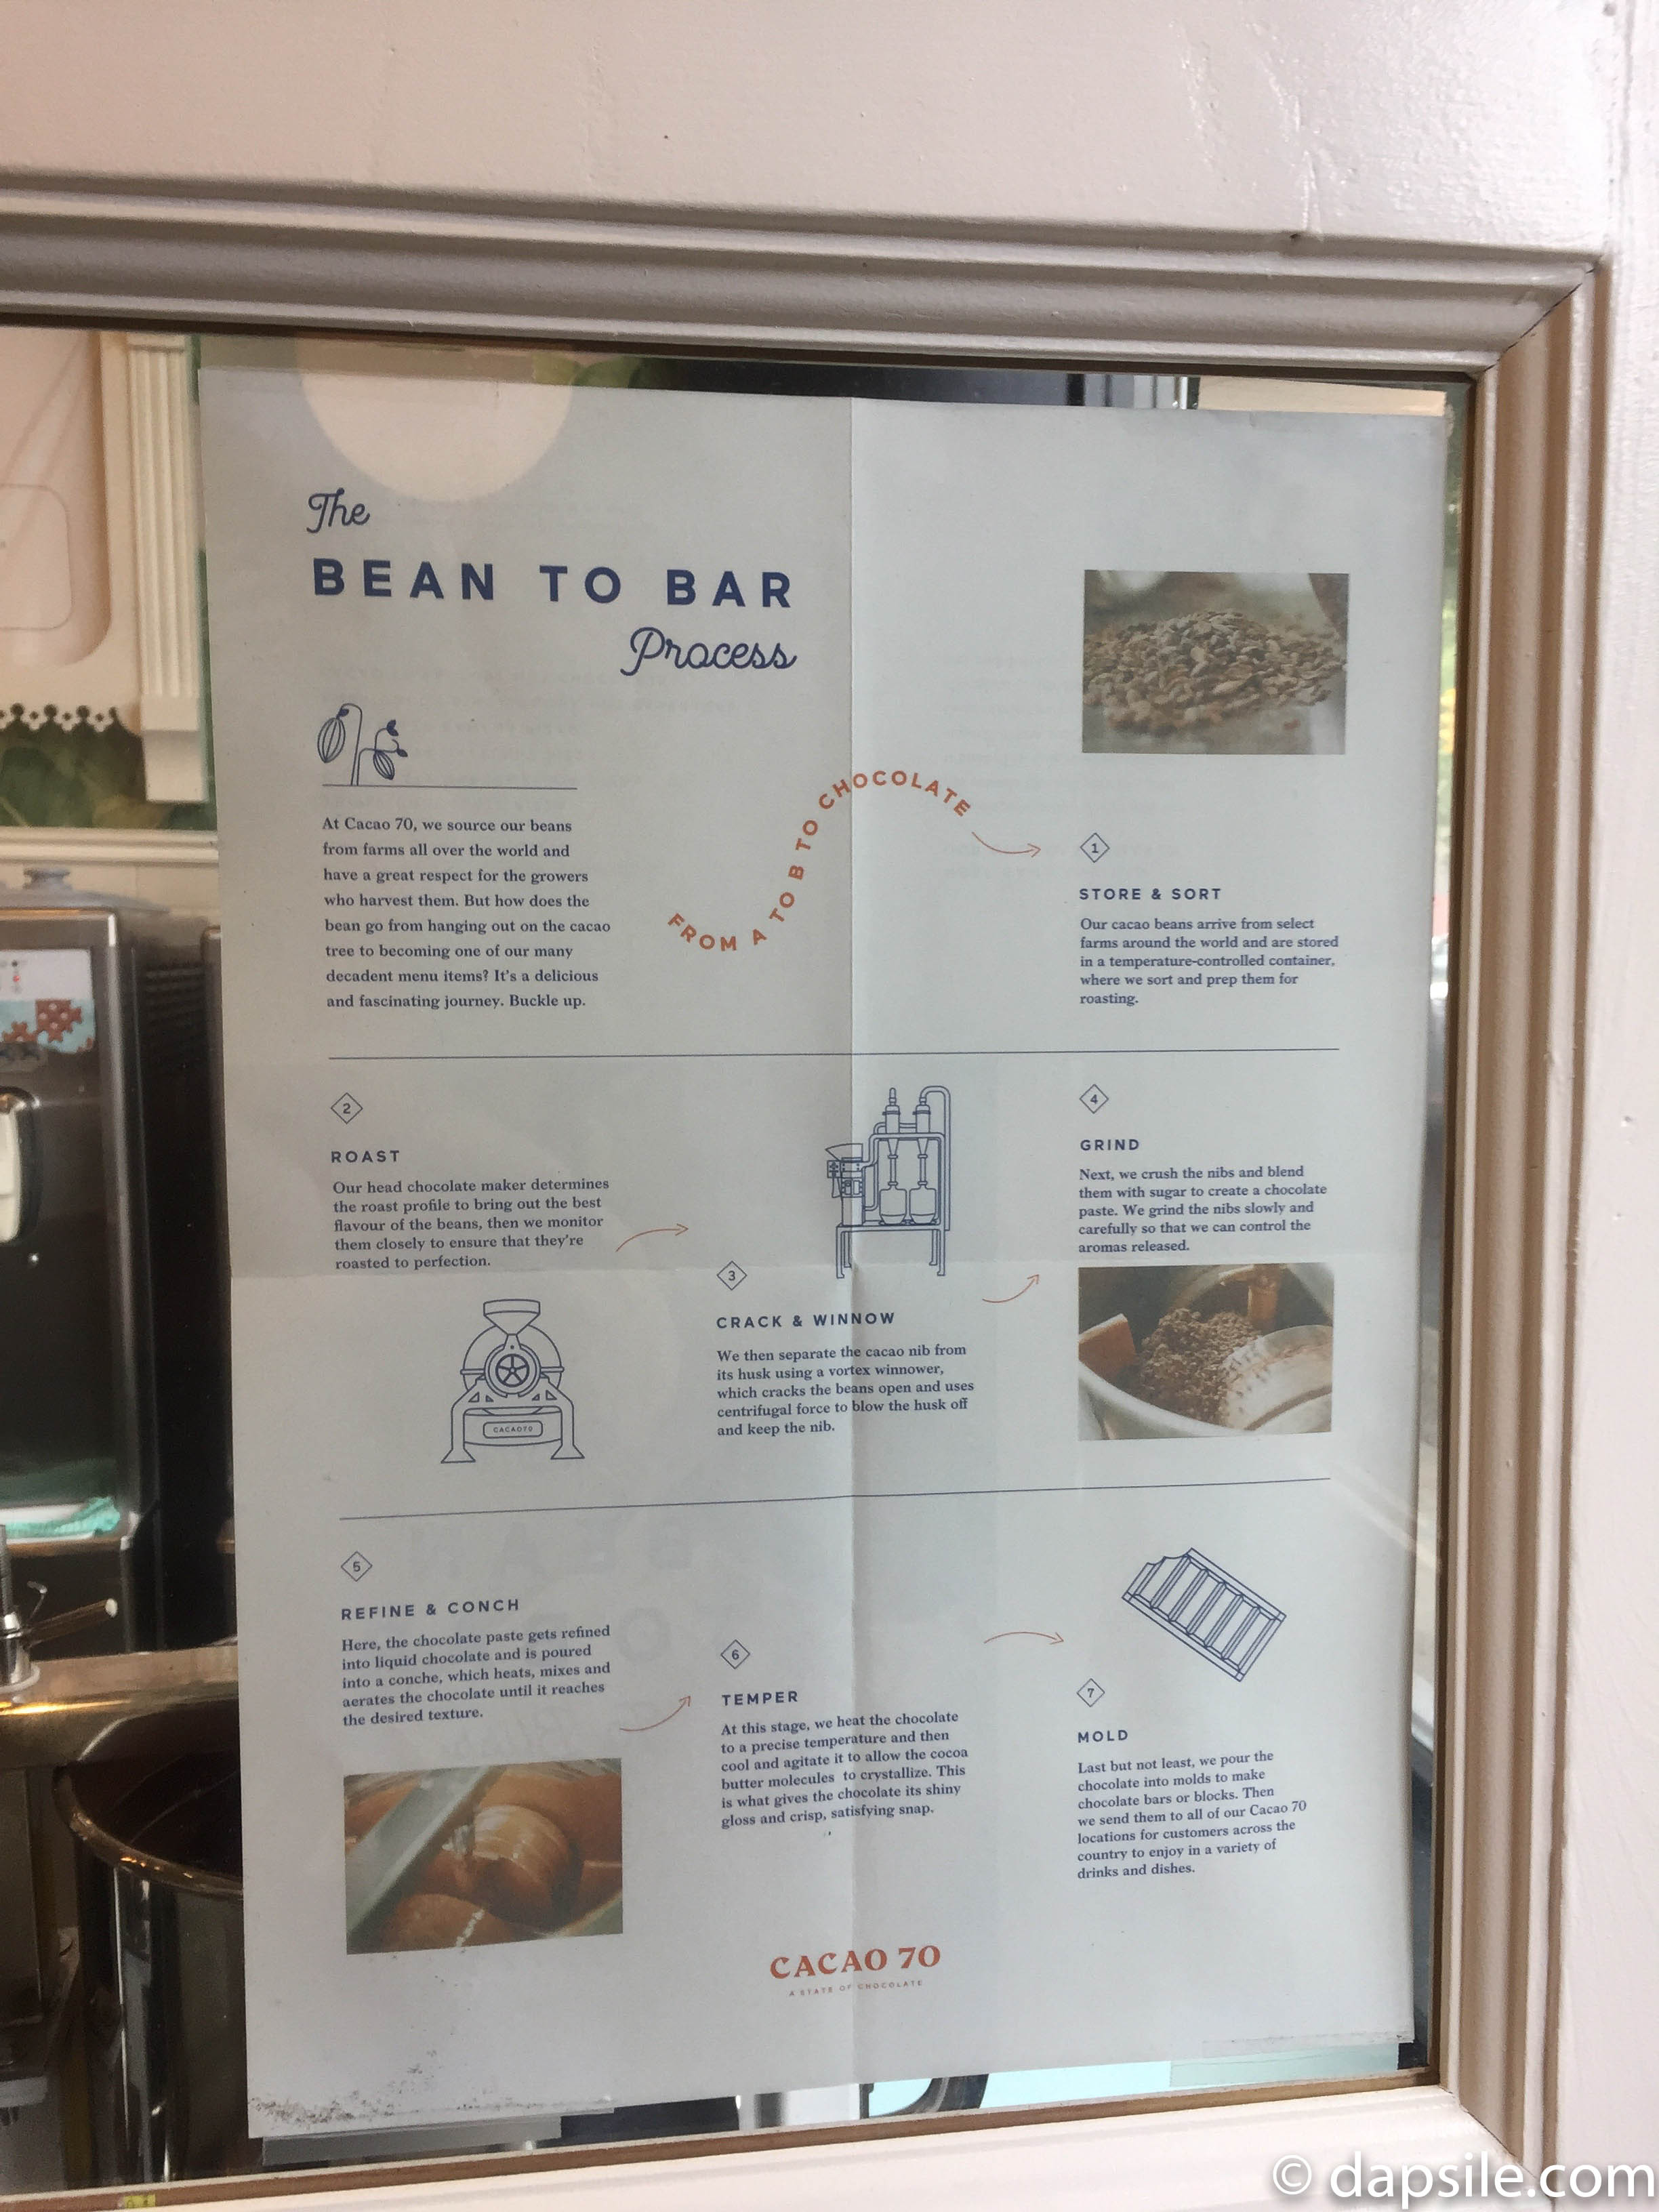 sheet explaining Cacao 70 Chocolate Process from bean to bar